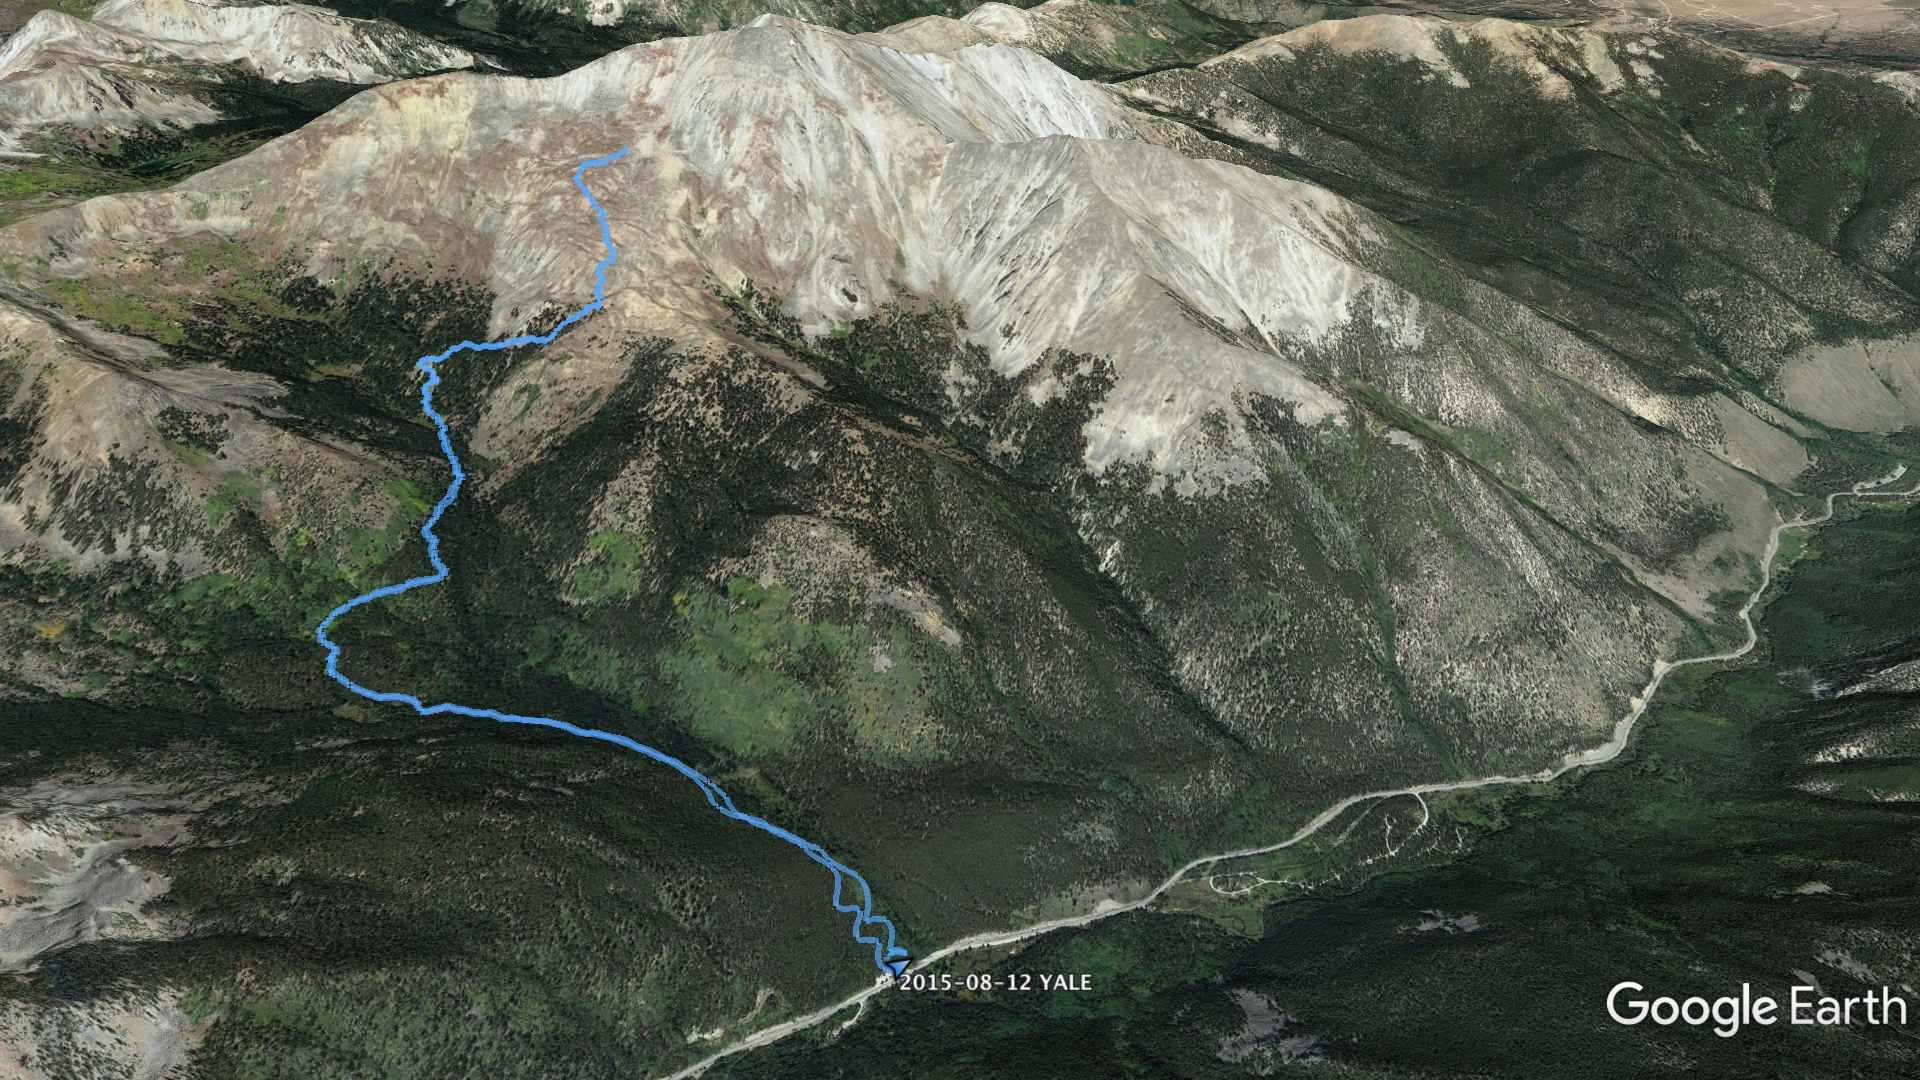 Aerial view of the summit path for Mount Yale